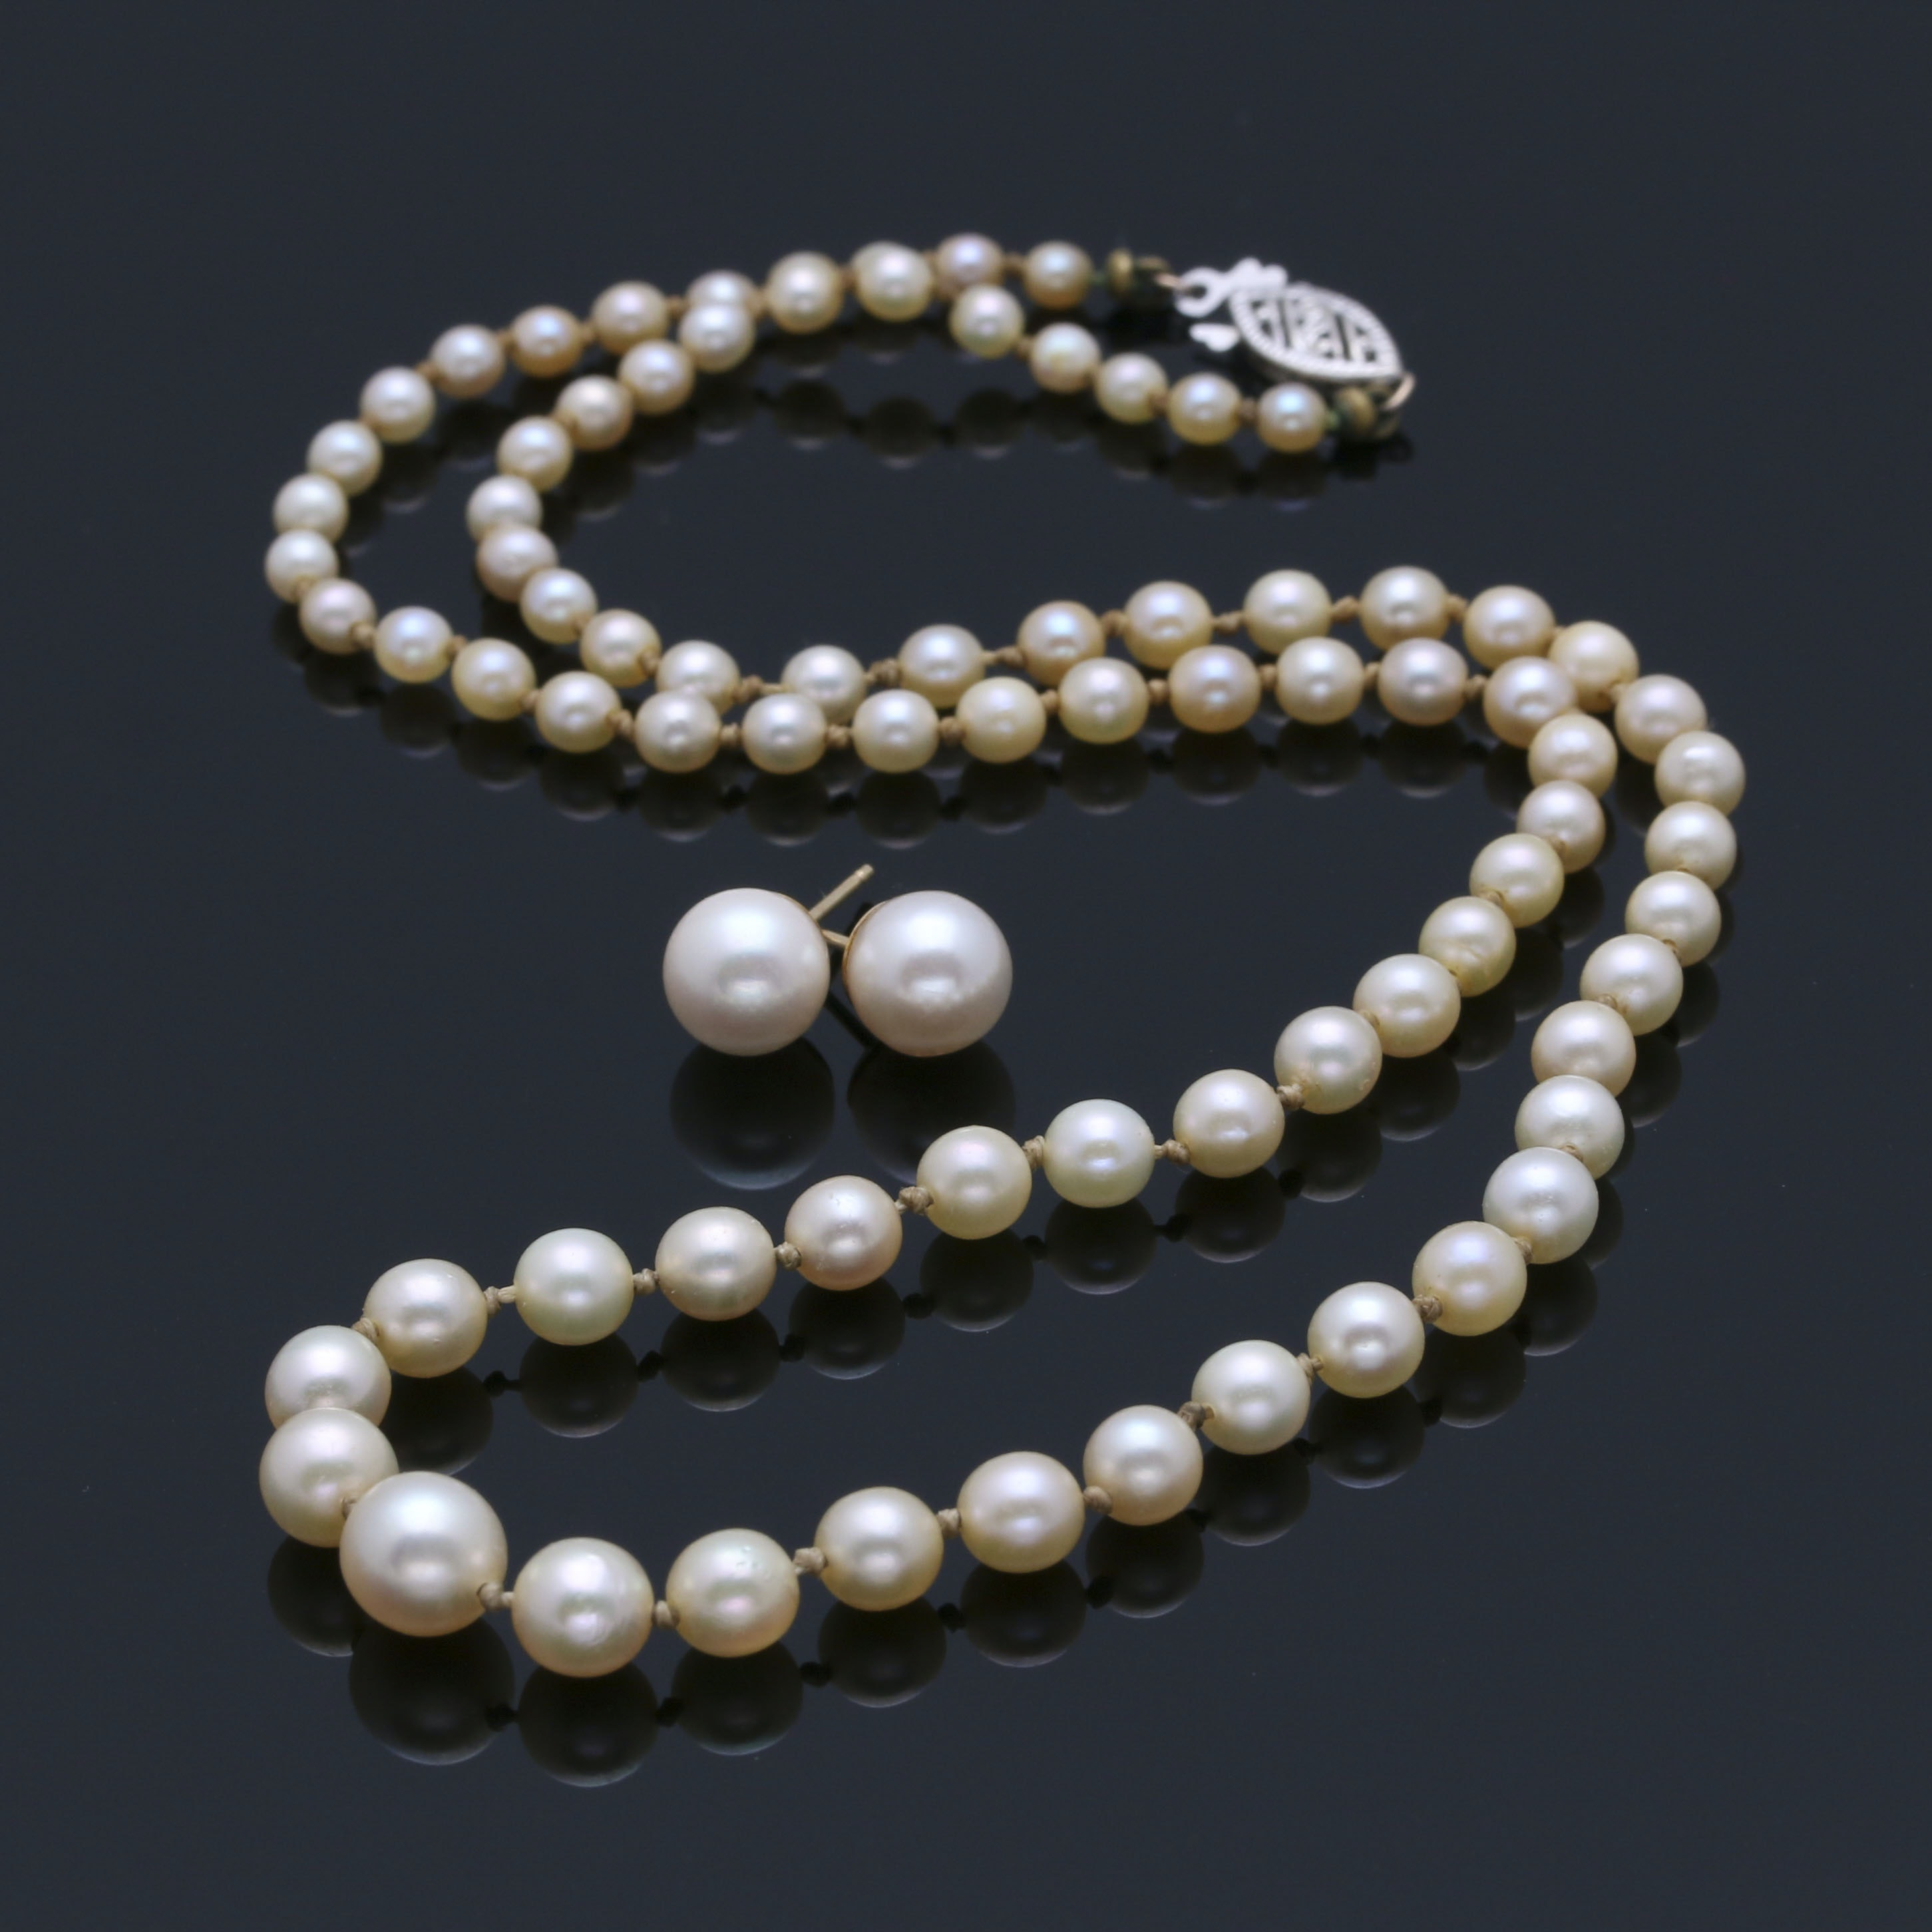 Cultured Pearl Necklace and Earrings with Yellow Gold Findings